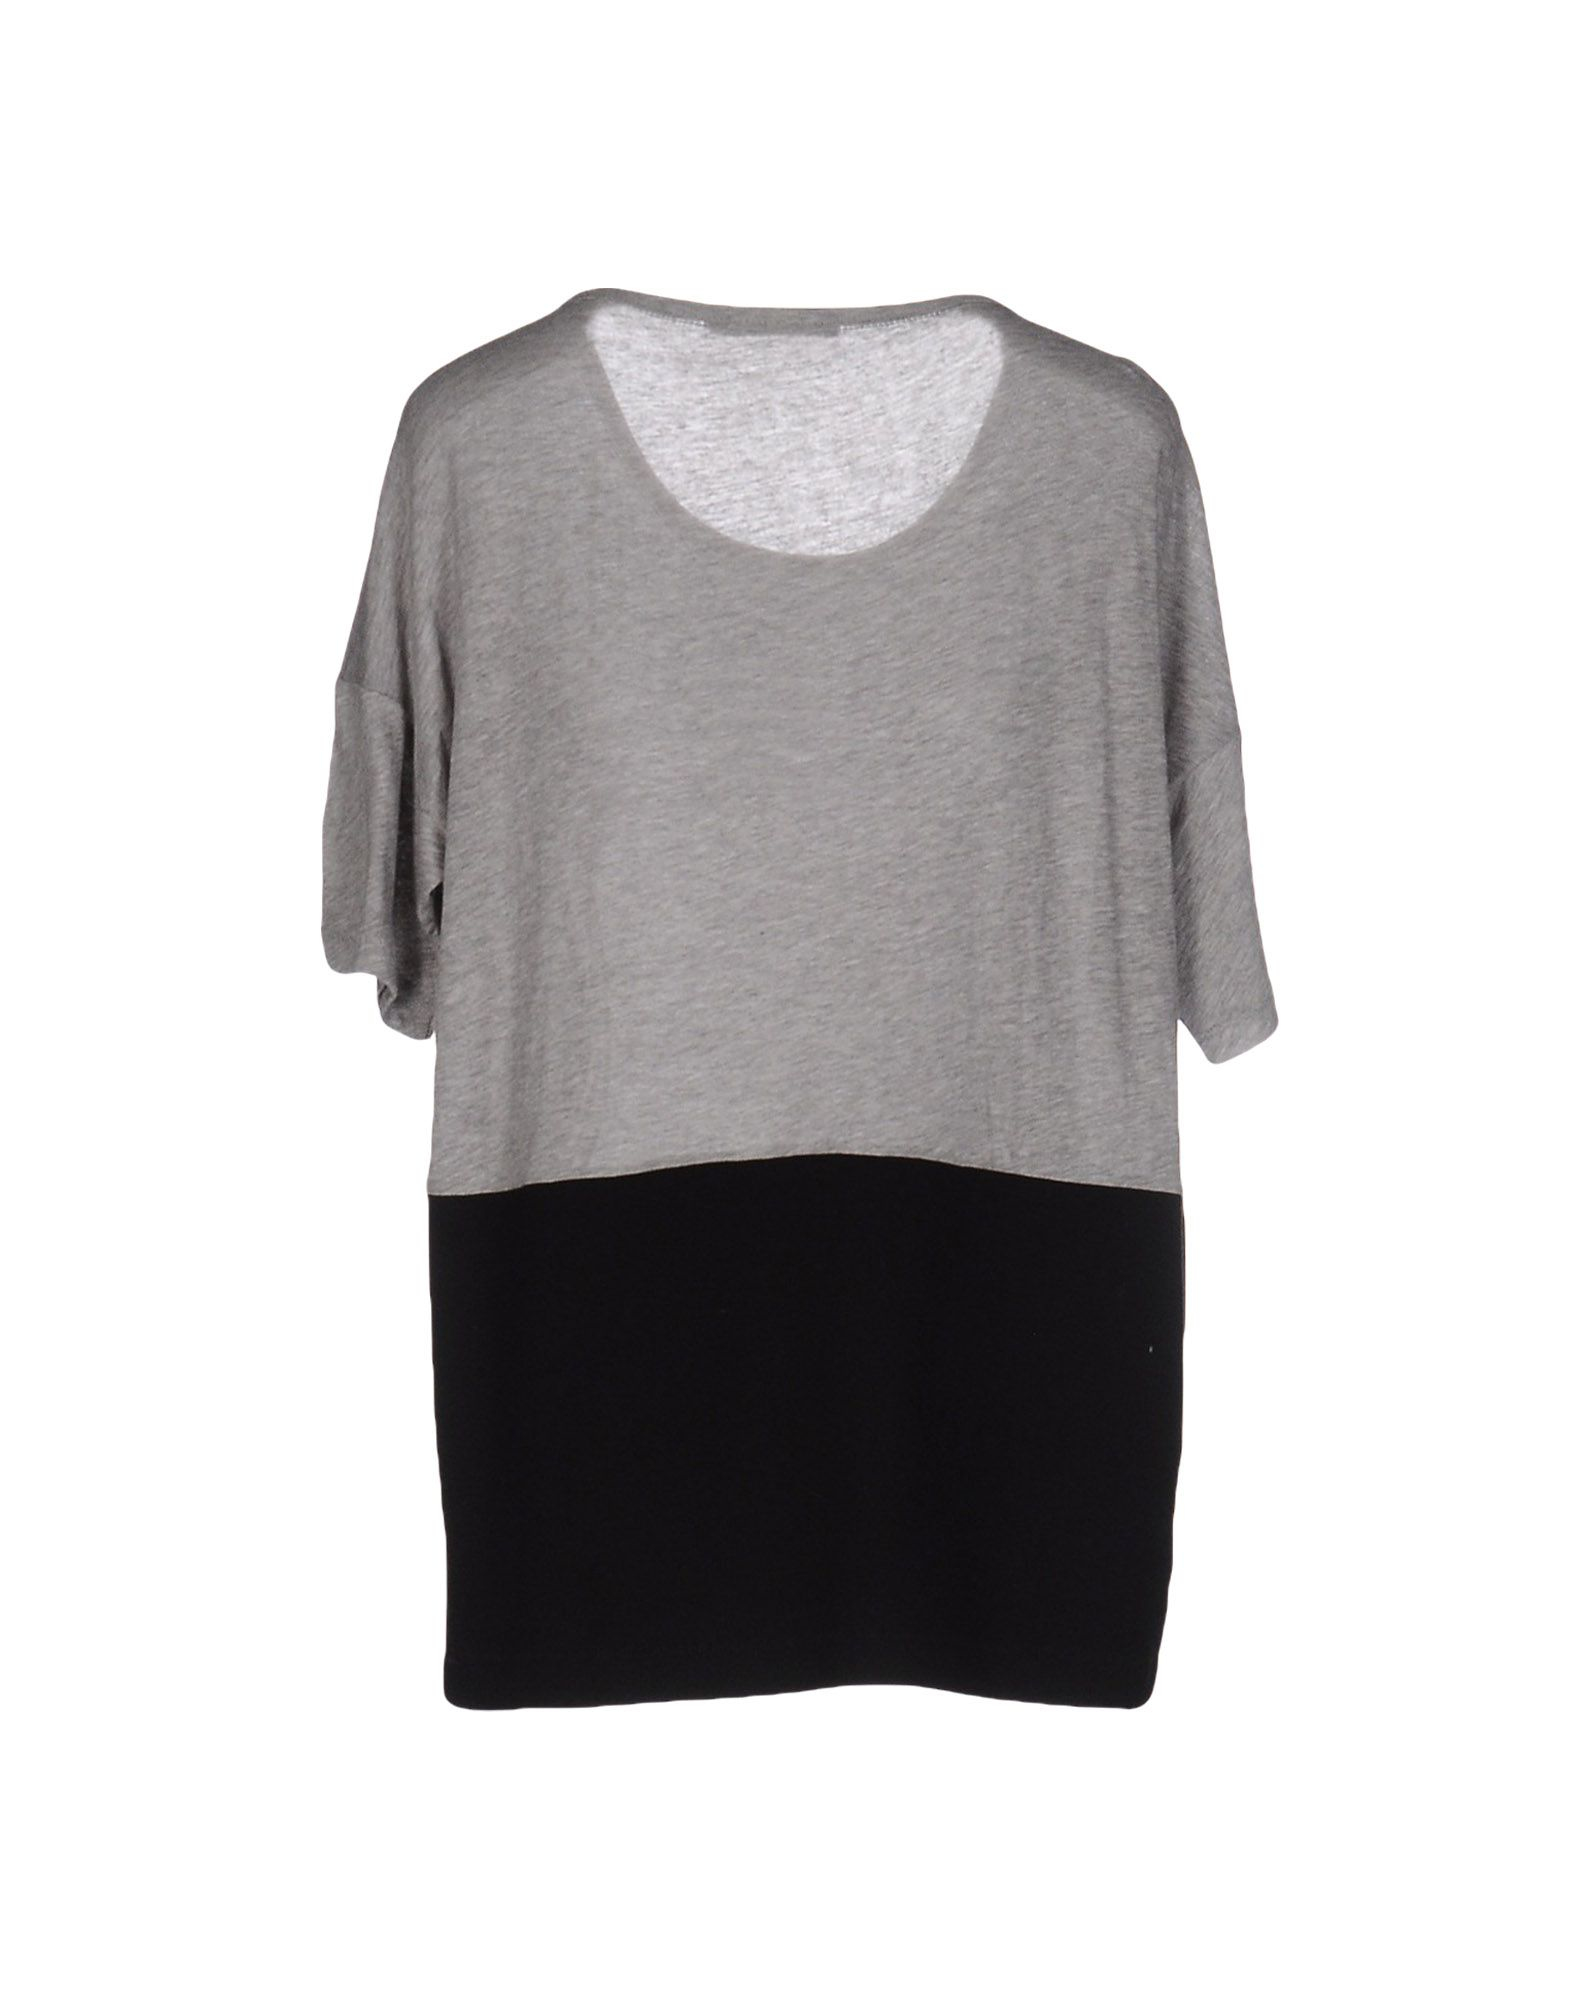 Lyst t by alexander wang t shirt in gray for Alexander wang t shirts